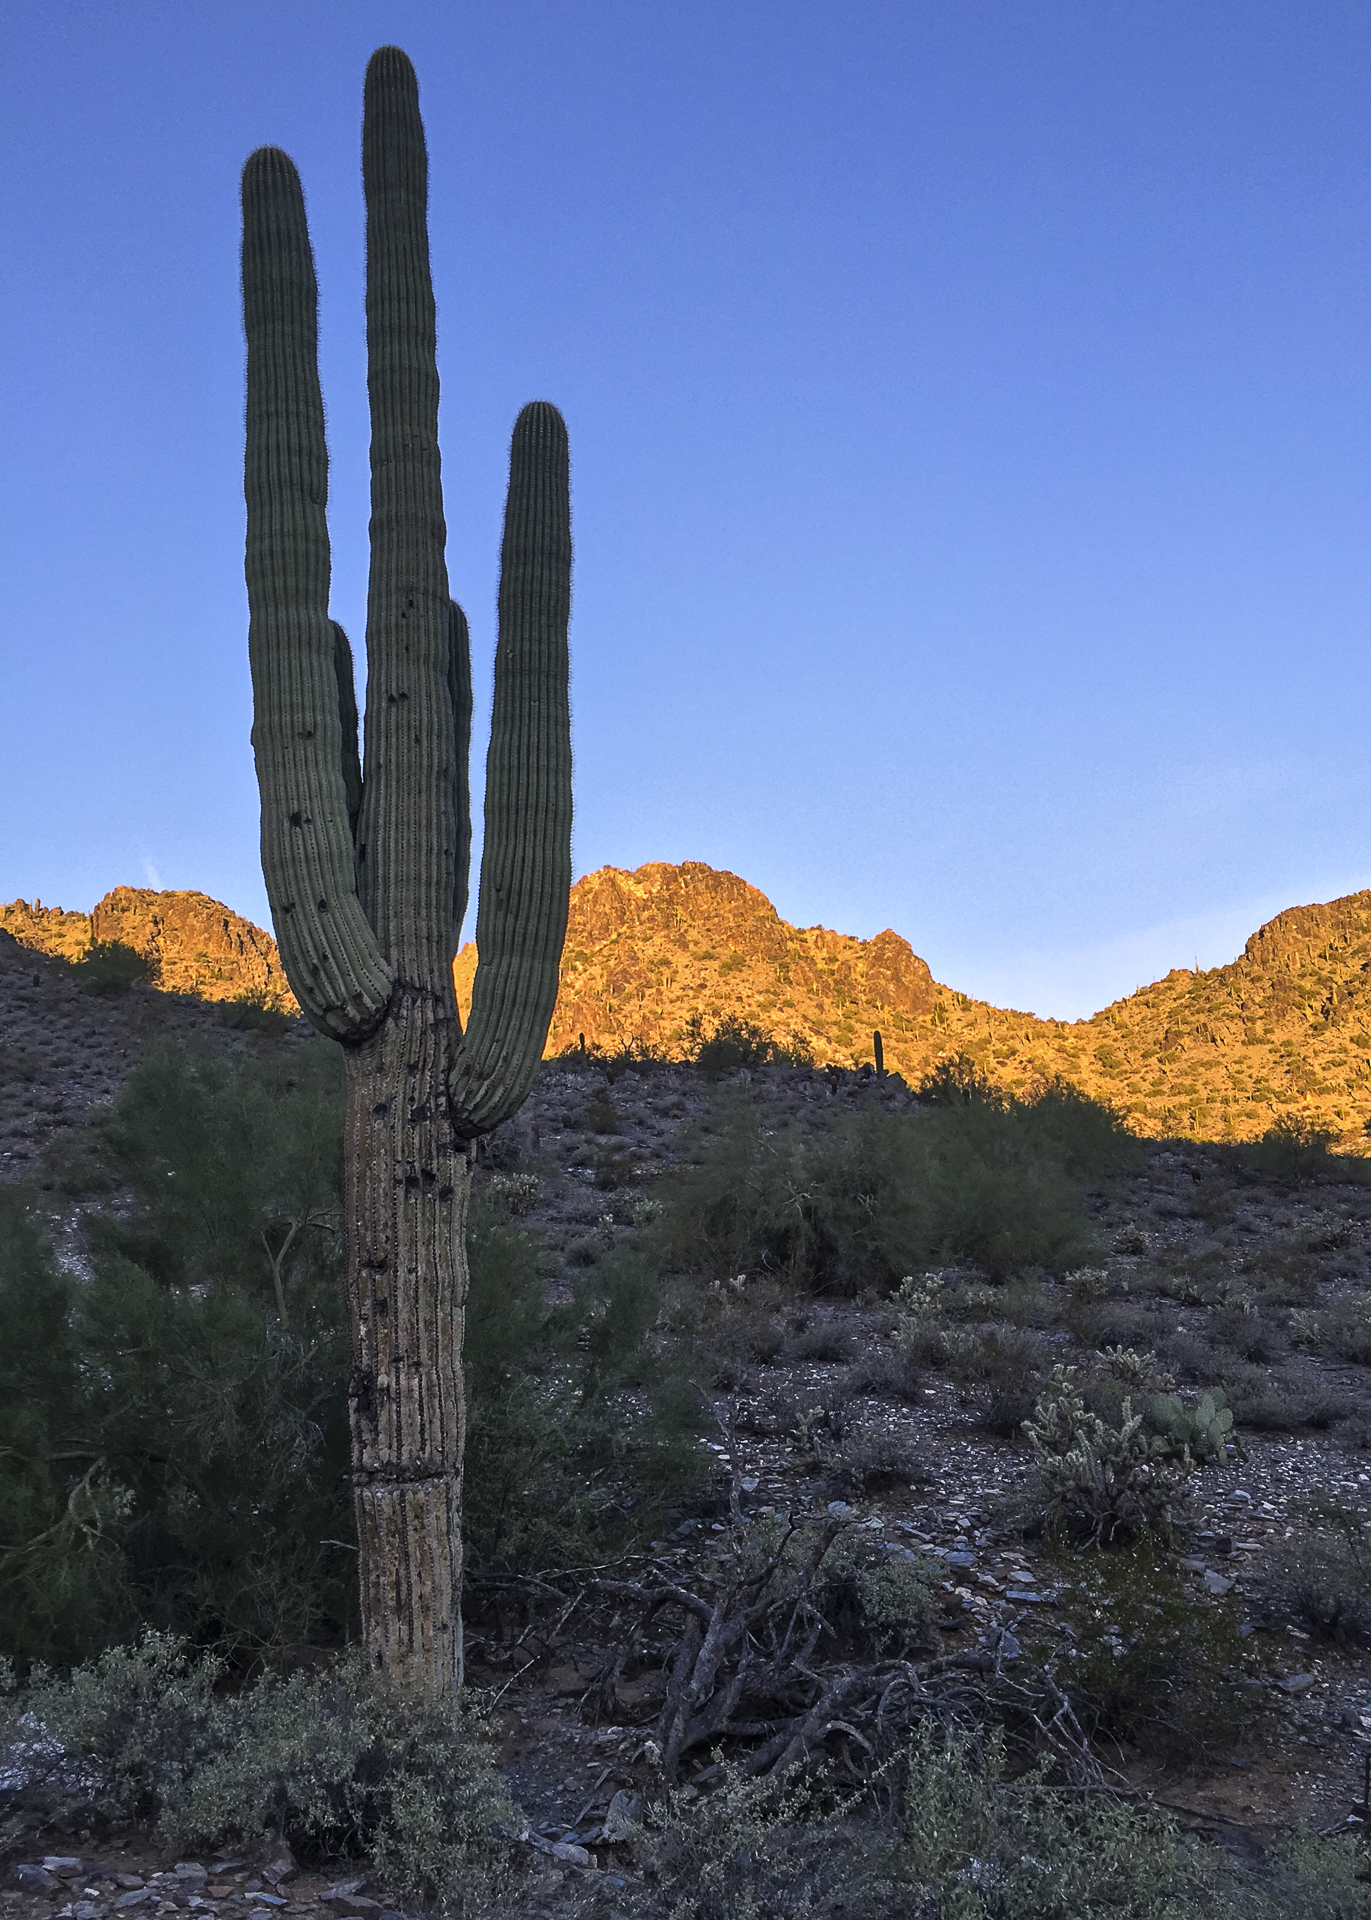 Saguaro cactus - pretty amazing to see them. The sun was still coming up.